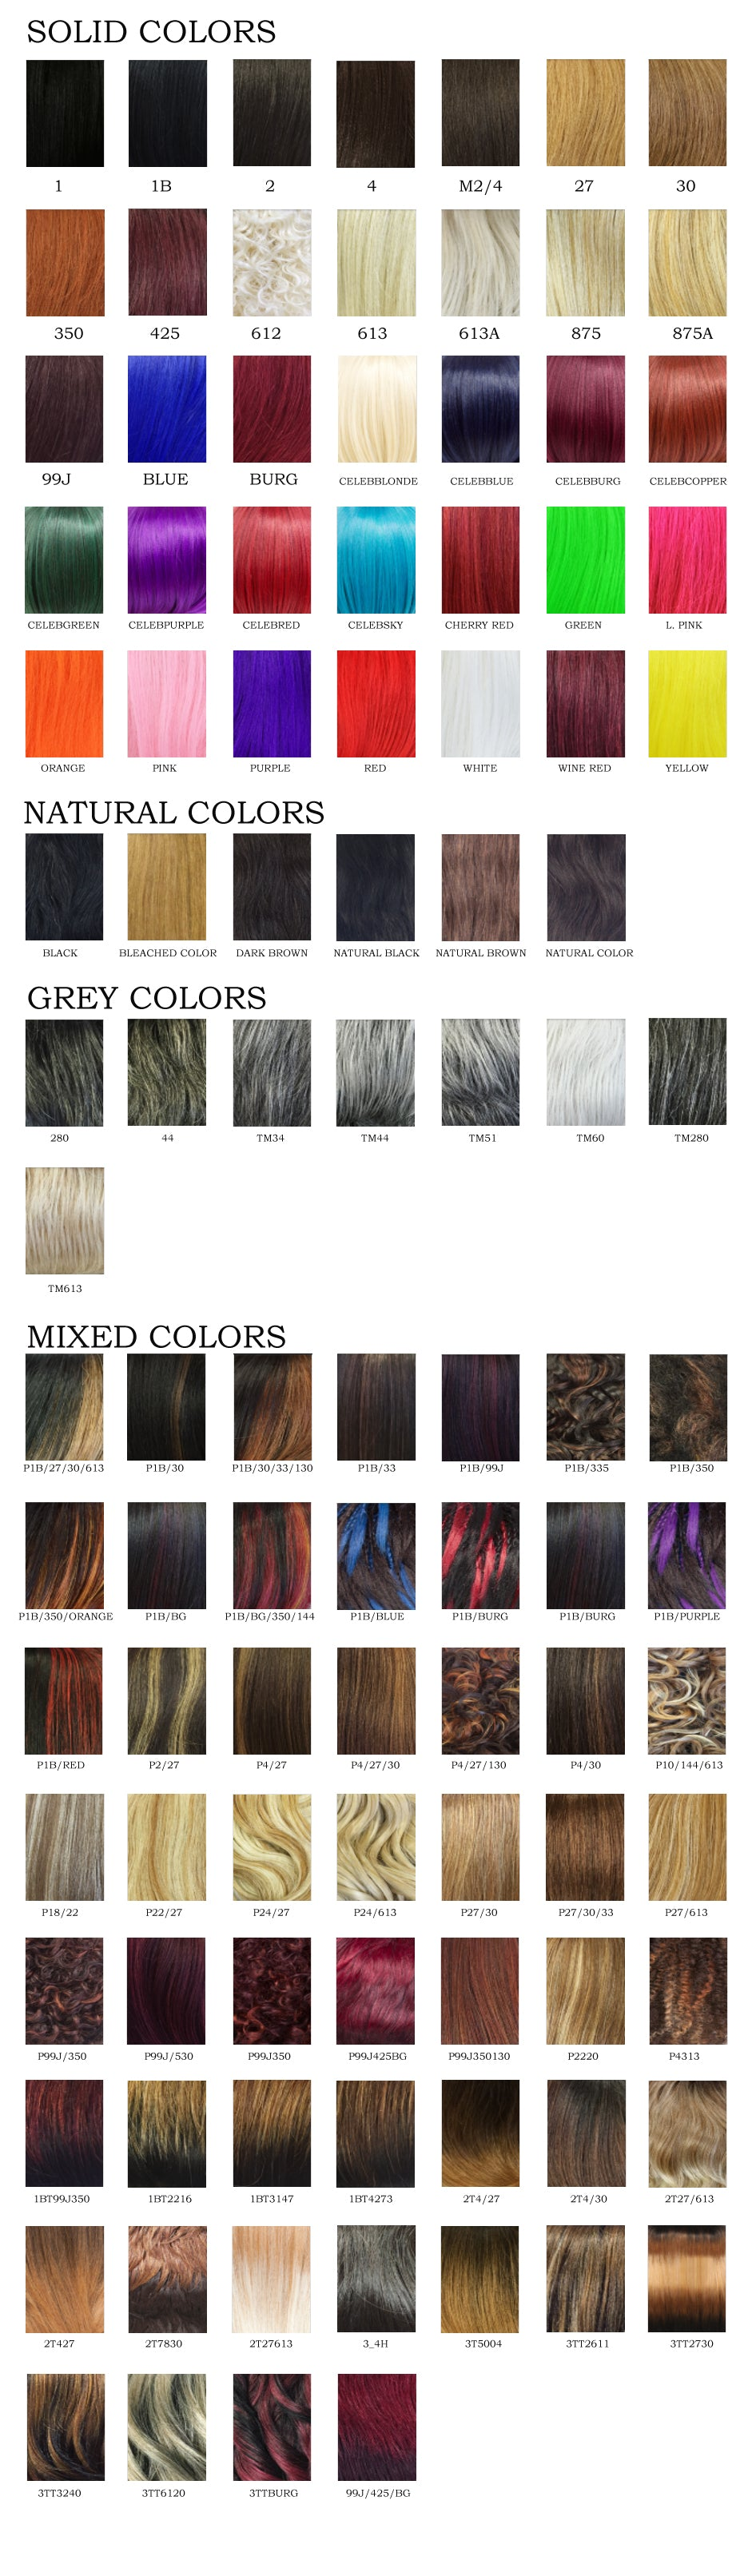 Its A Wig Color Chart Newyorkhairmall